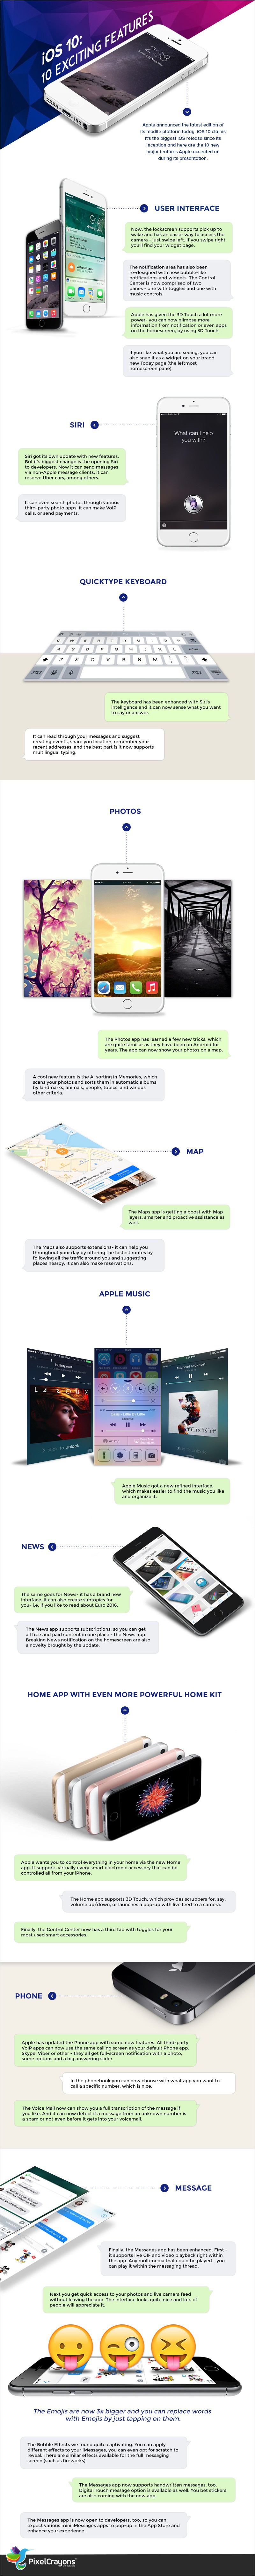 iOS 10: Know 10 Exciting Features (Infographic) - Image 1